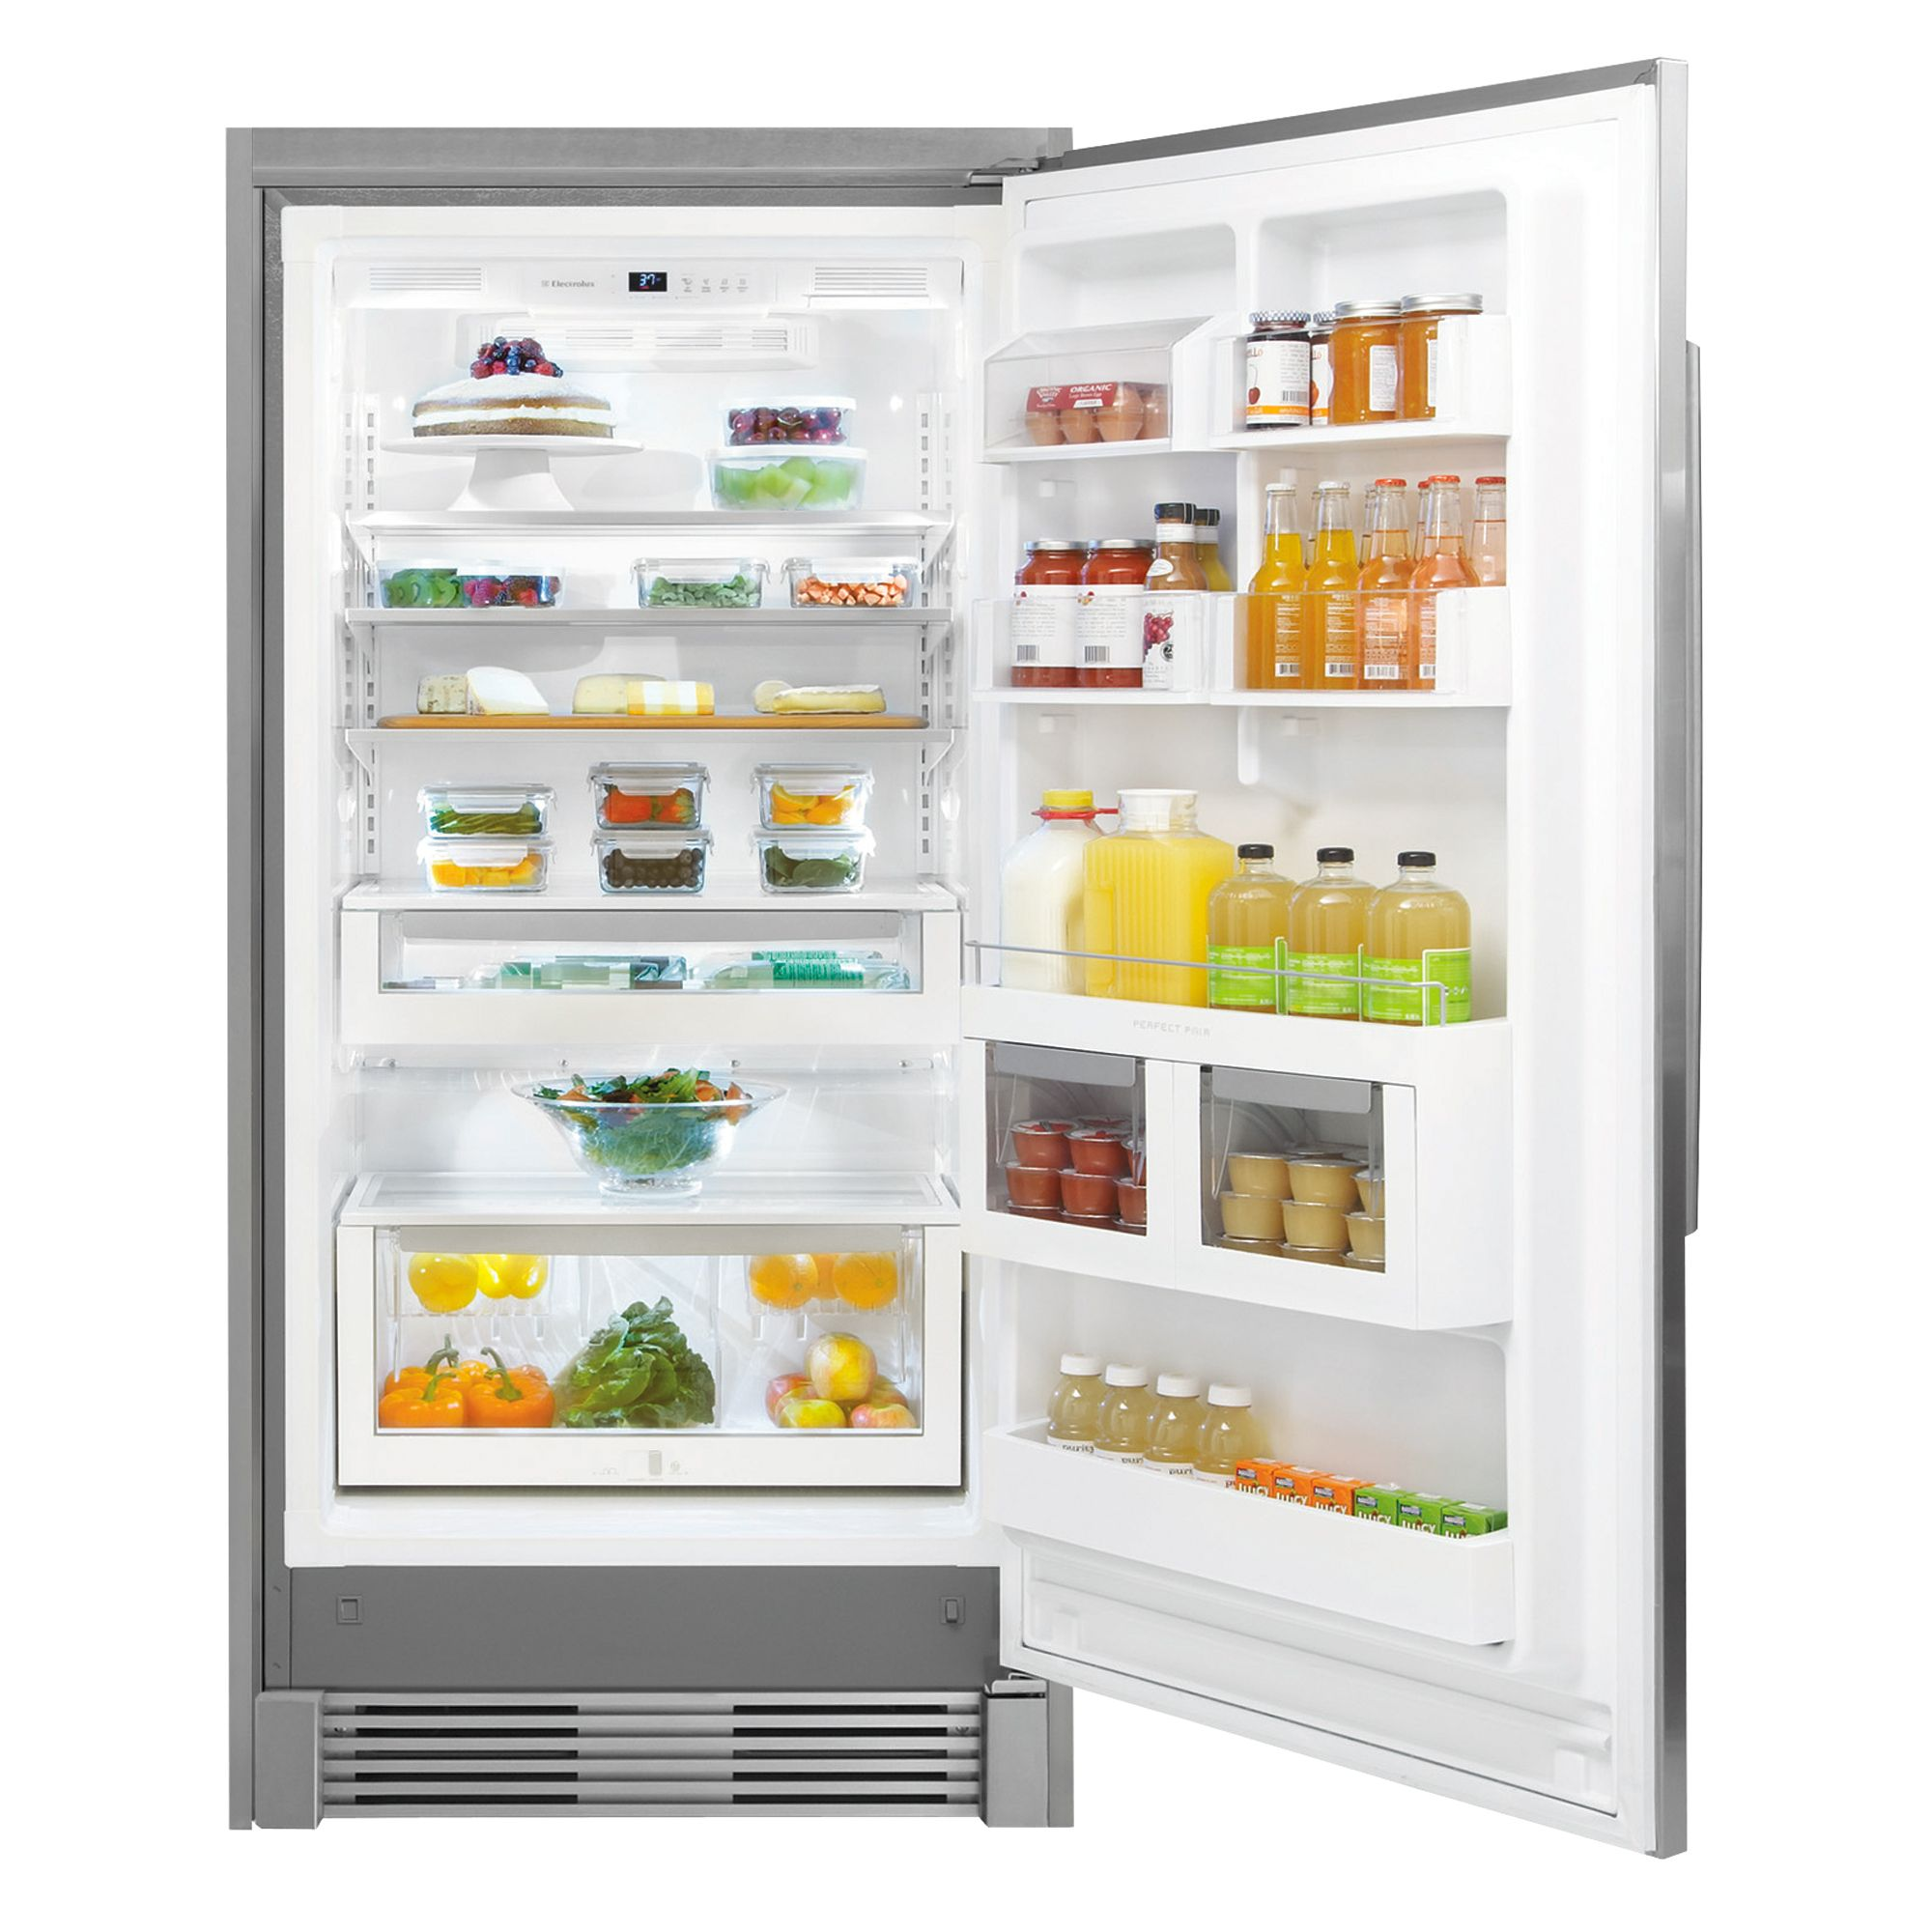 Electrolux 19.0 cu. ft. Built-In All Refrigerator - Stainless Steel